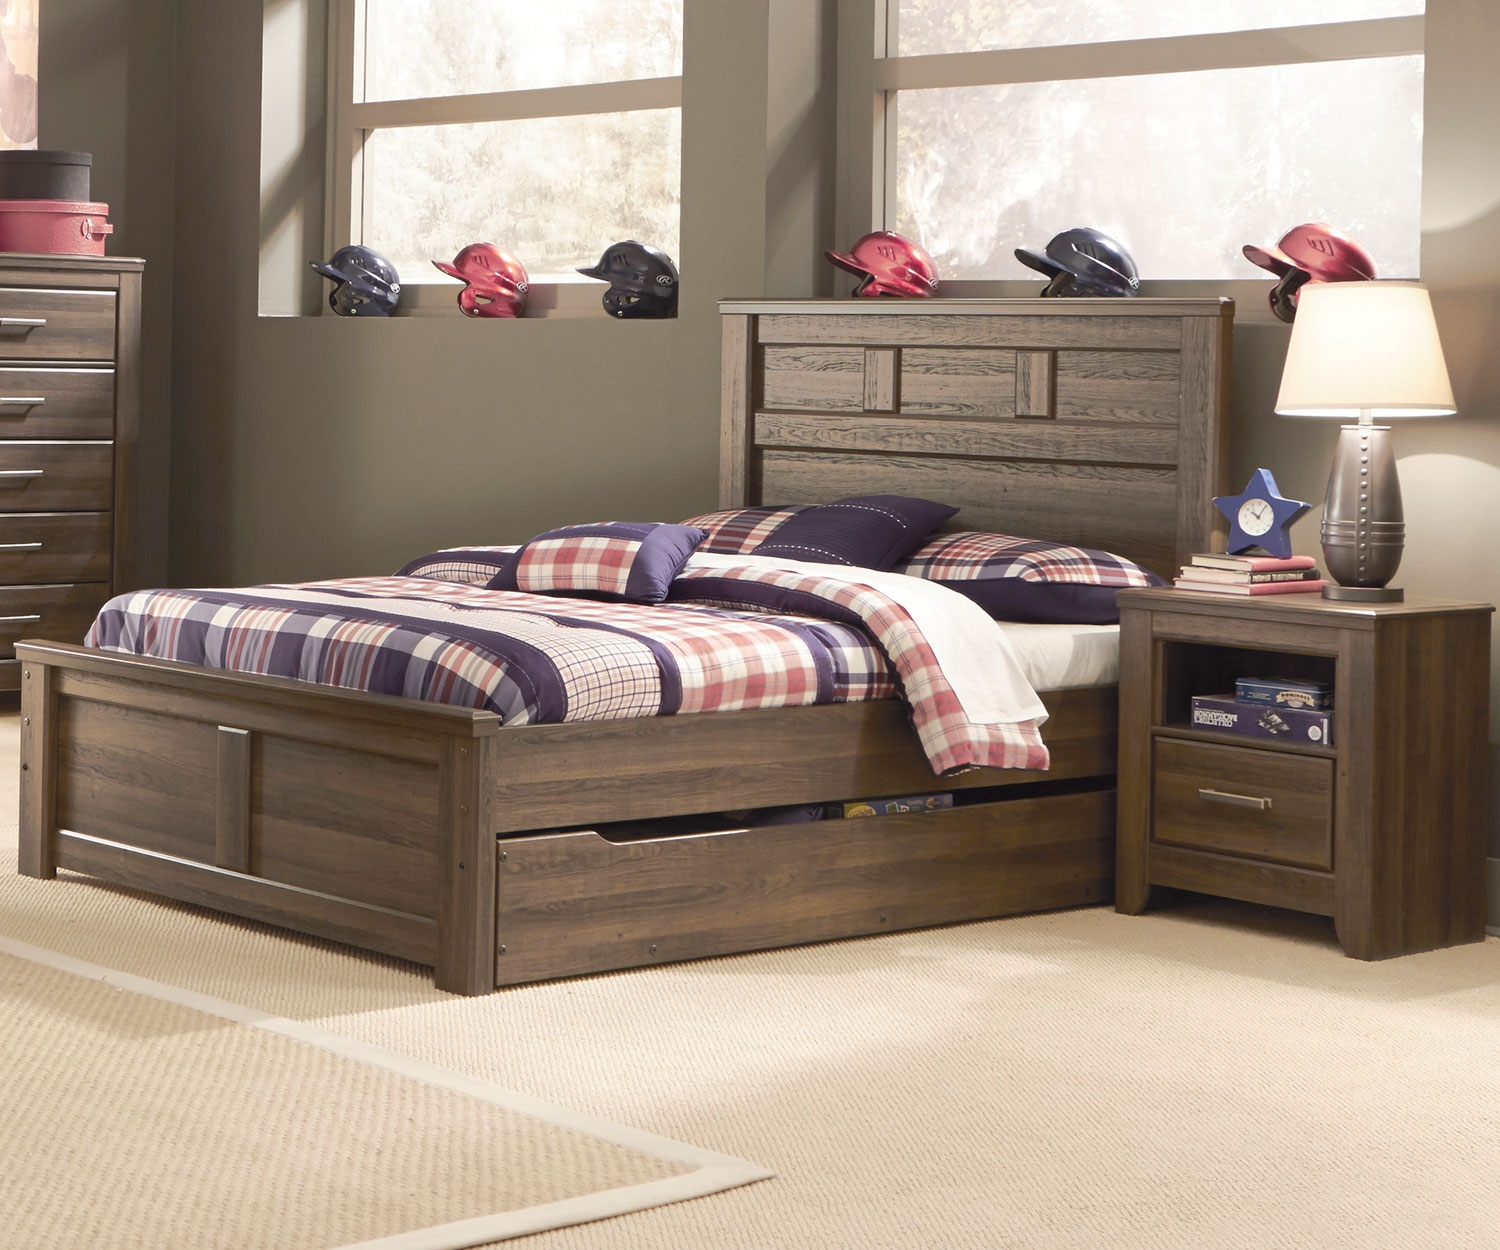 Kids Furniture Amusing Trundle Bed For Beds Girls Full Size Bedroom Sets Ideas On Sale Teen Set Frame Boys Twin Adults Apppie Org